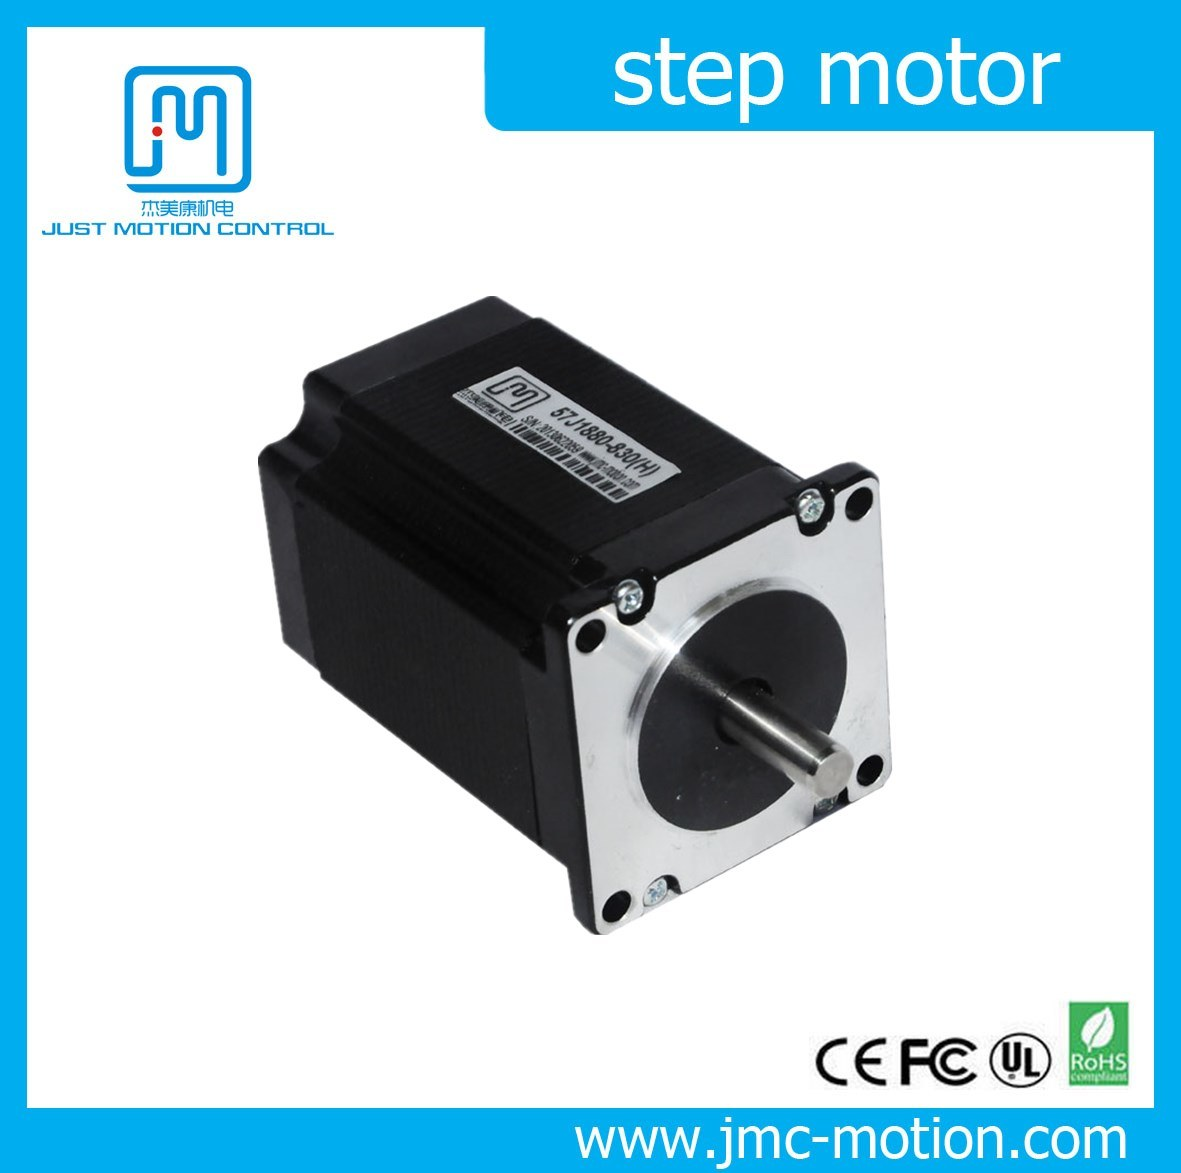 CNC 2 Phase NEMA 23 Stepping Motor 1.8degree CE RoHS Certification